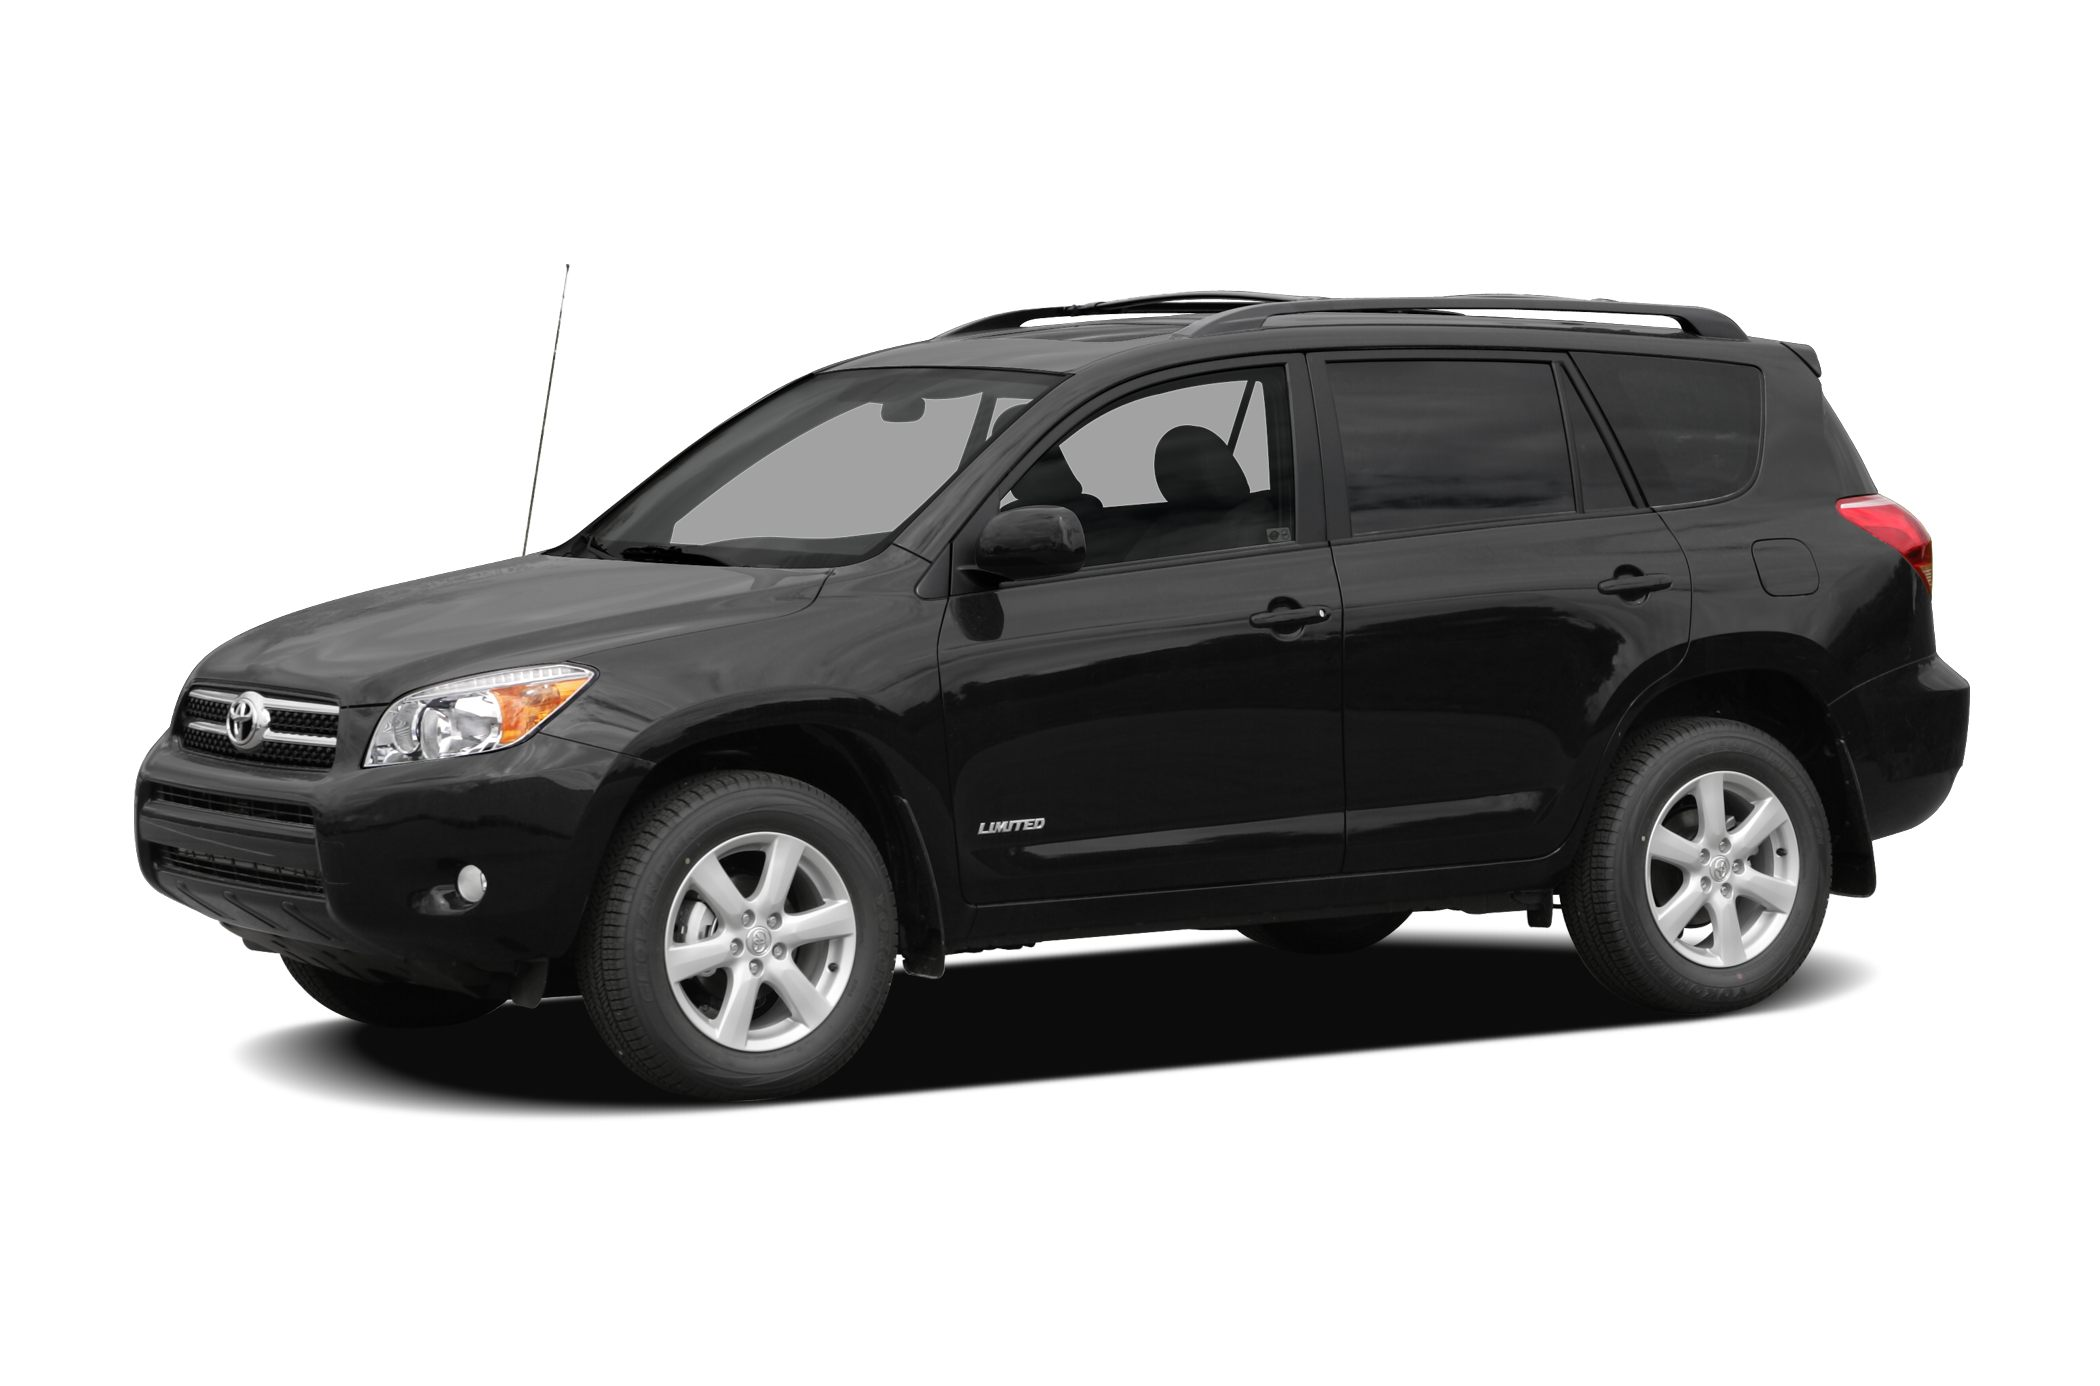 2008 Toyota RAV4 Sport SUV for sale in Little Rock for $13,900 with 52,000 miles.